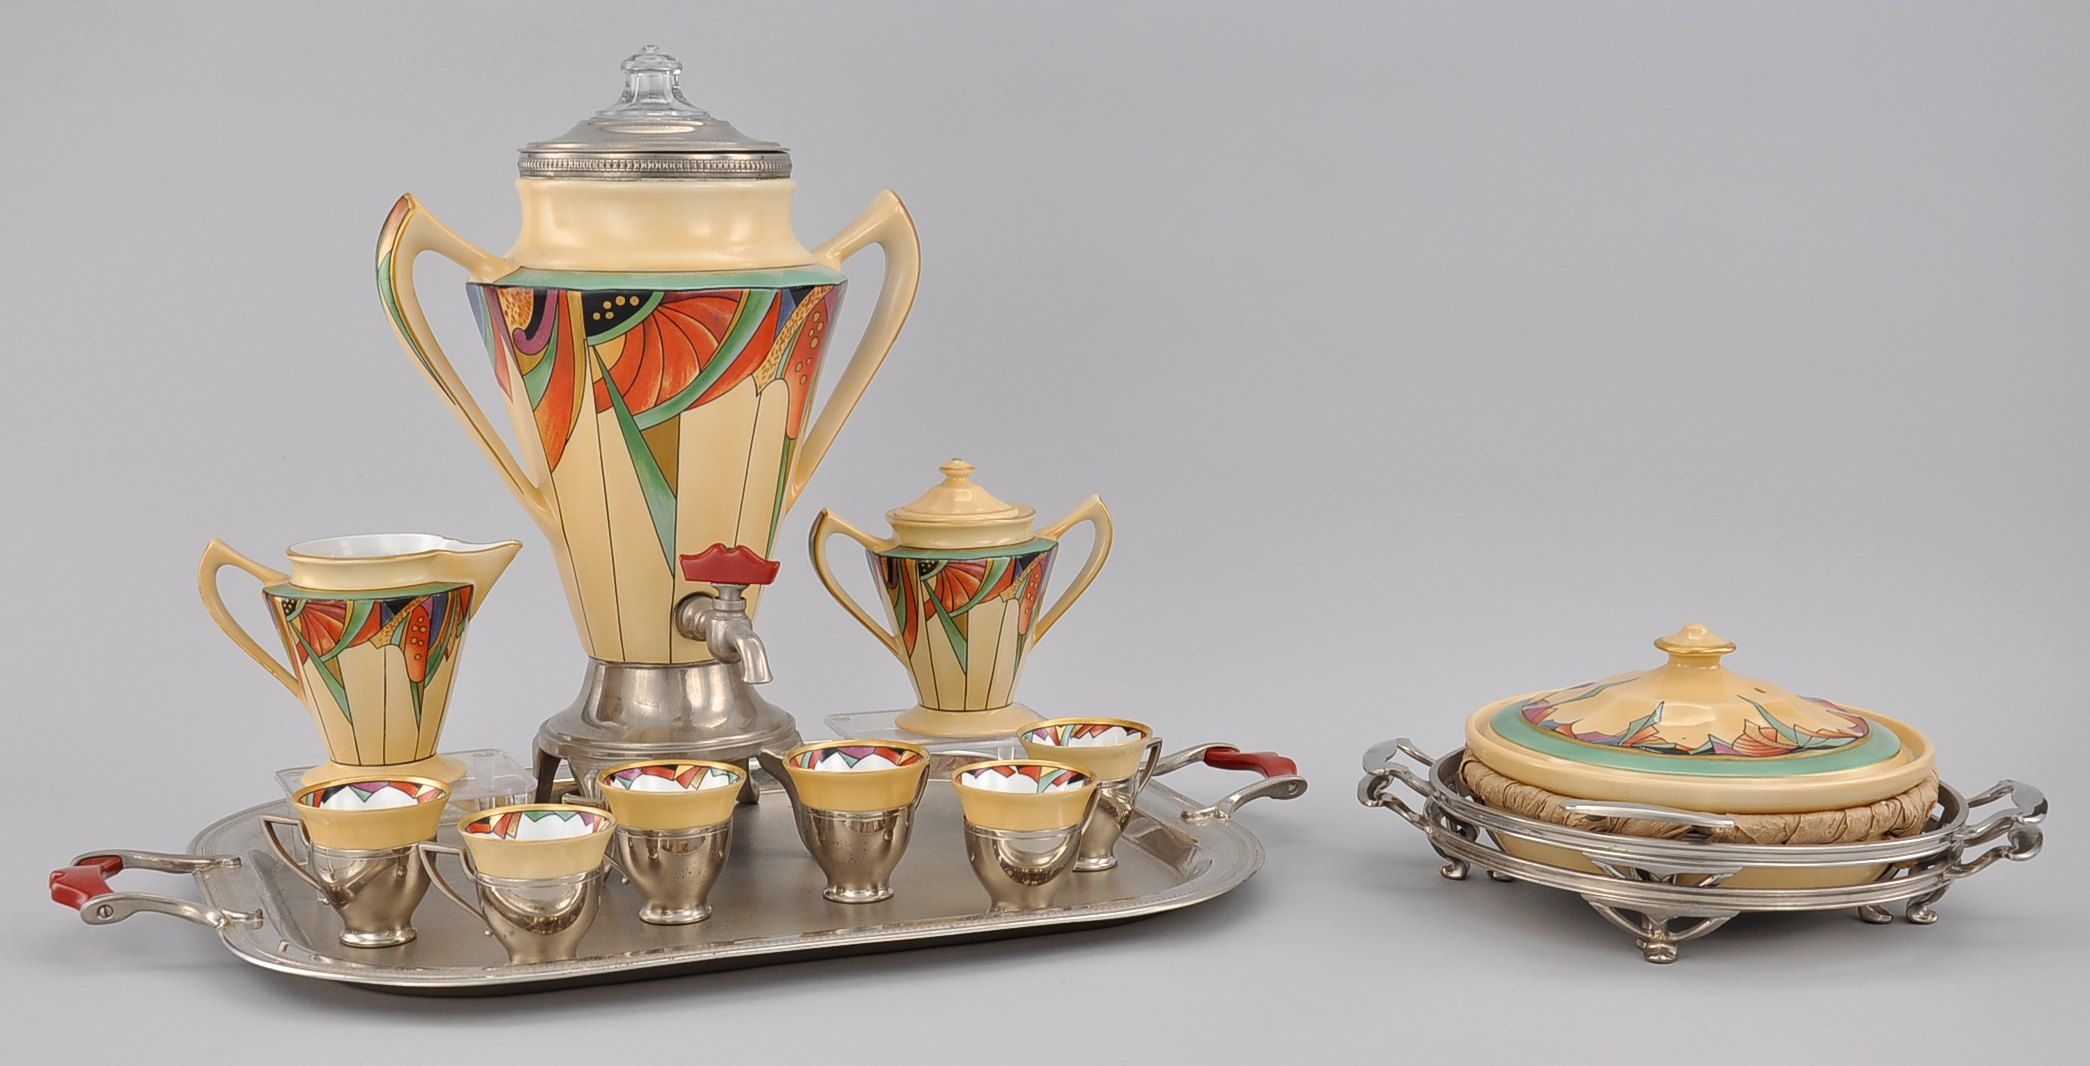 Beste Art Deco tea service by Fraunfelter China for Royal Rochester, USA HK-98